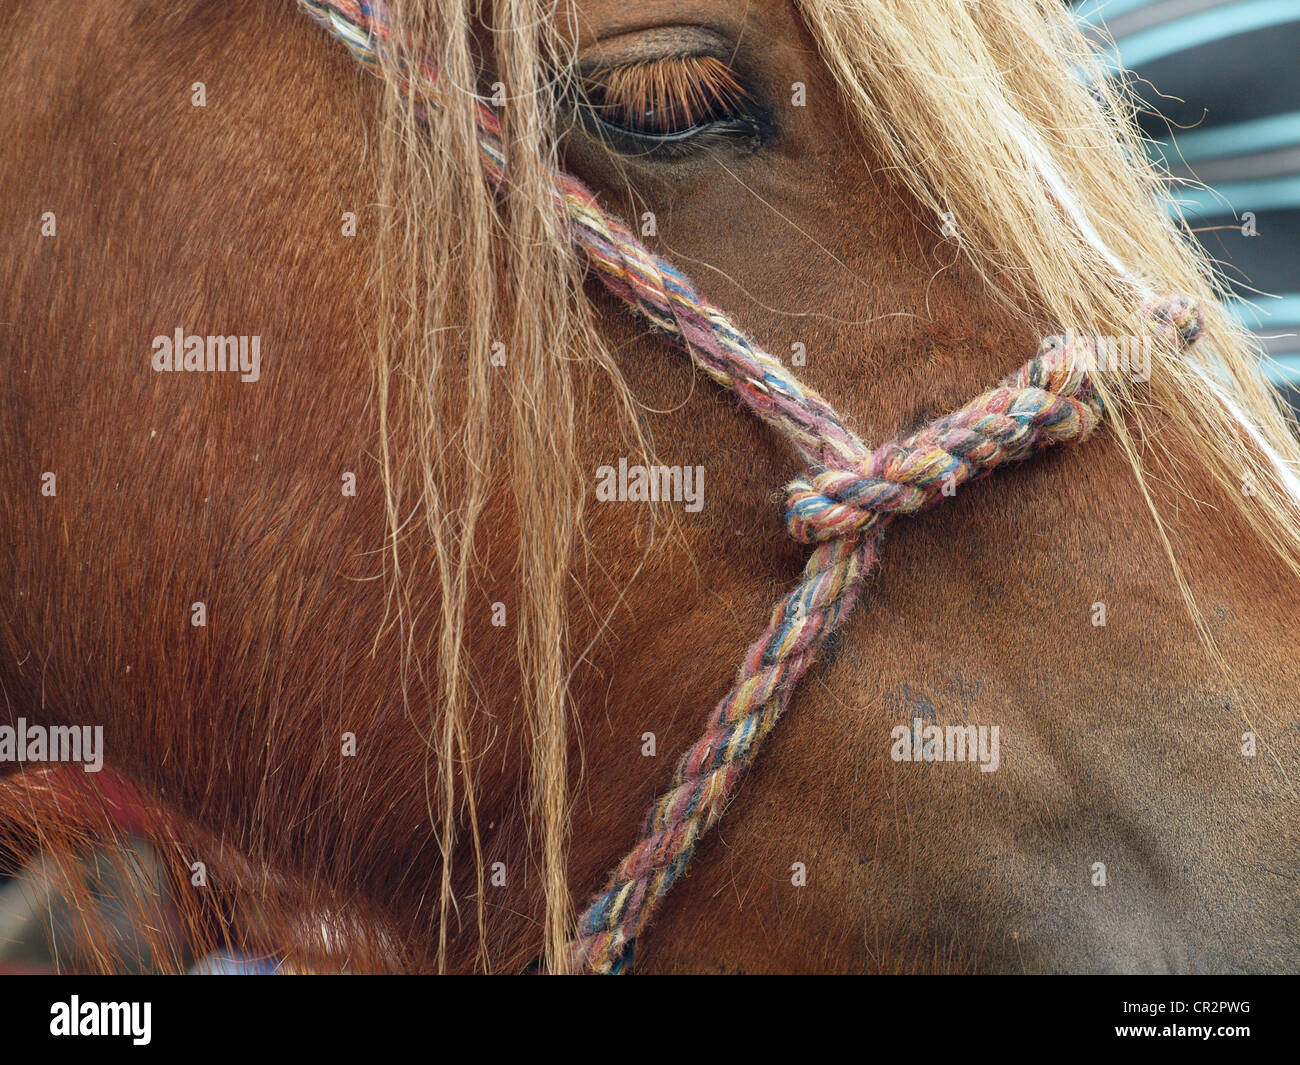 Bay horse with long mane framing eye & multicoloured woven halter at the famous annual travellers' gathering - Stock Image